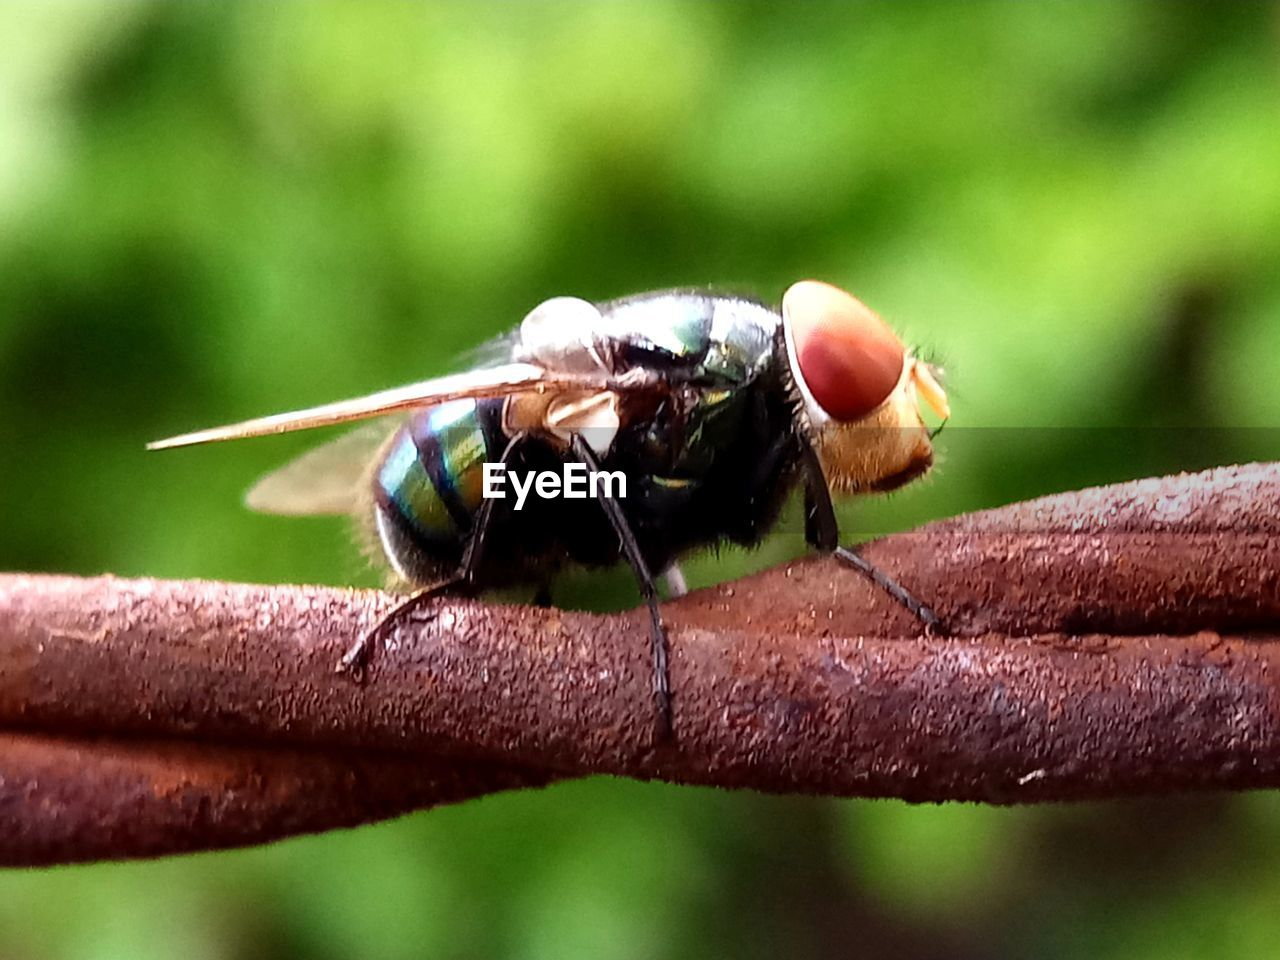 animals in the wild, animal wildlife, insect, animal themes, animal, invertebrate, close-up, one animal, day, focus on foreground, no people, animal wing, nature, outdoors, selective focus, plant, leaf, plant part, fly, green color, animal eye